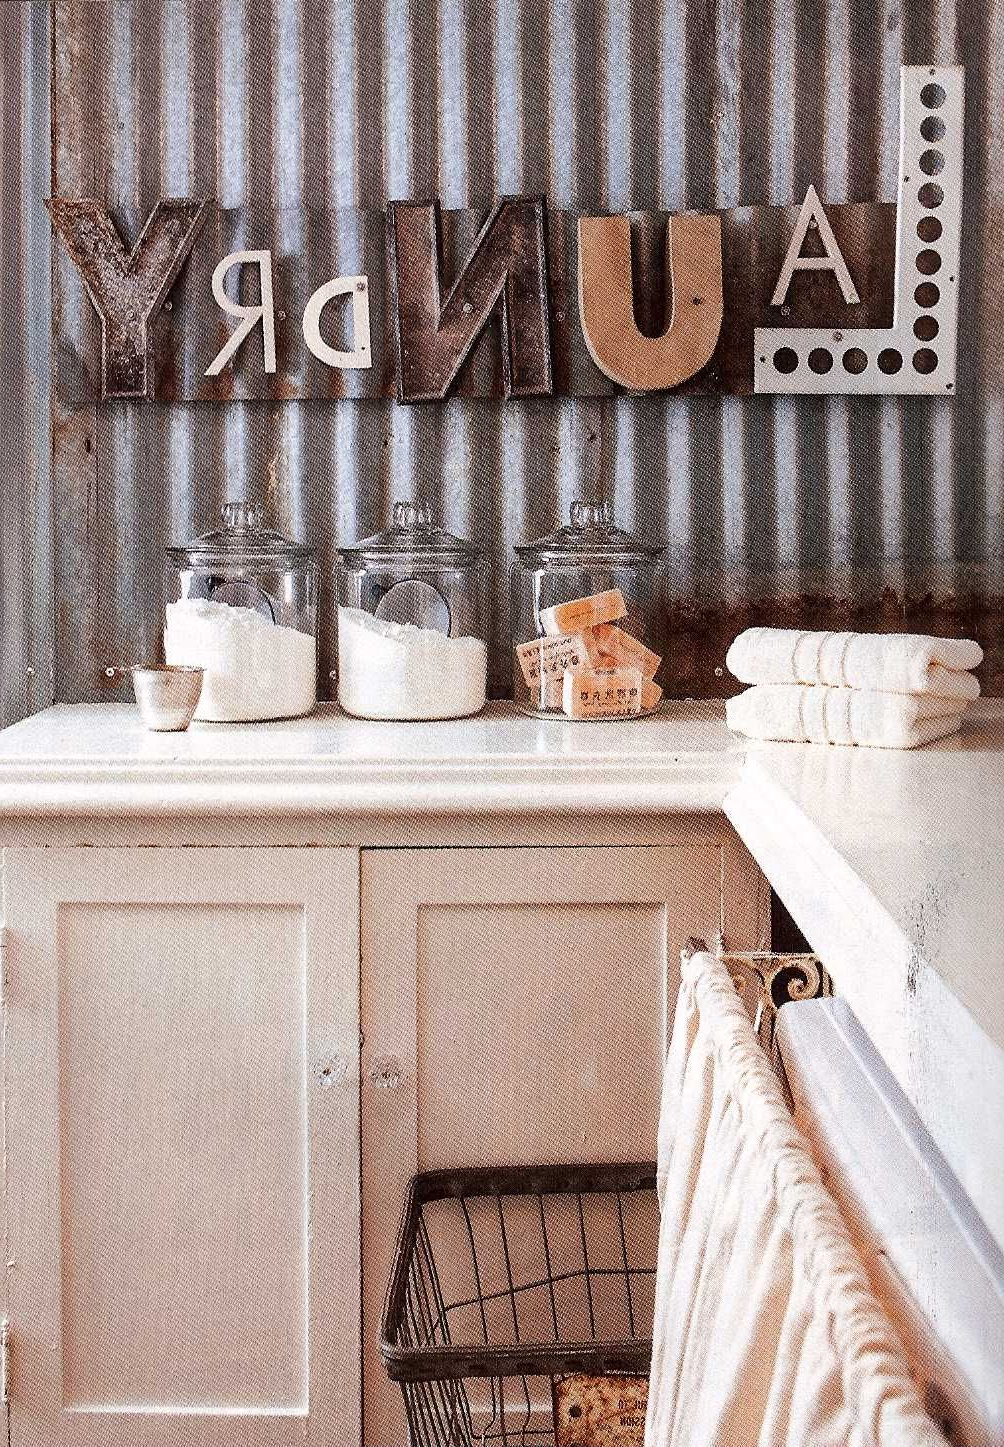 Preferred Fabulous Laundry Room With Laundry Repurposed Letters As Wall Decor Intended For Metal Laundry Room Wall Decor (View 4 of 20)